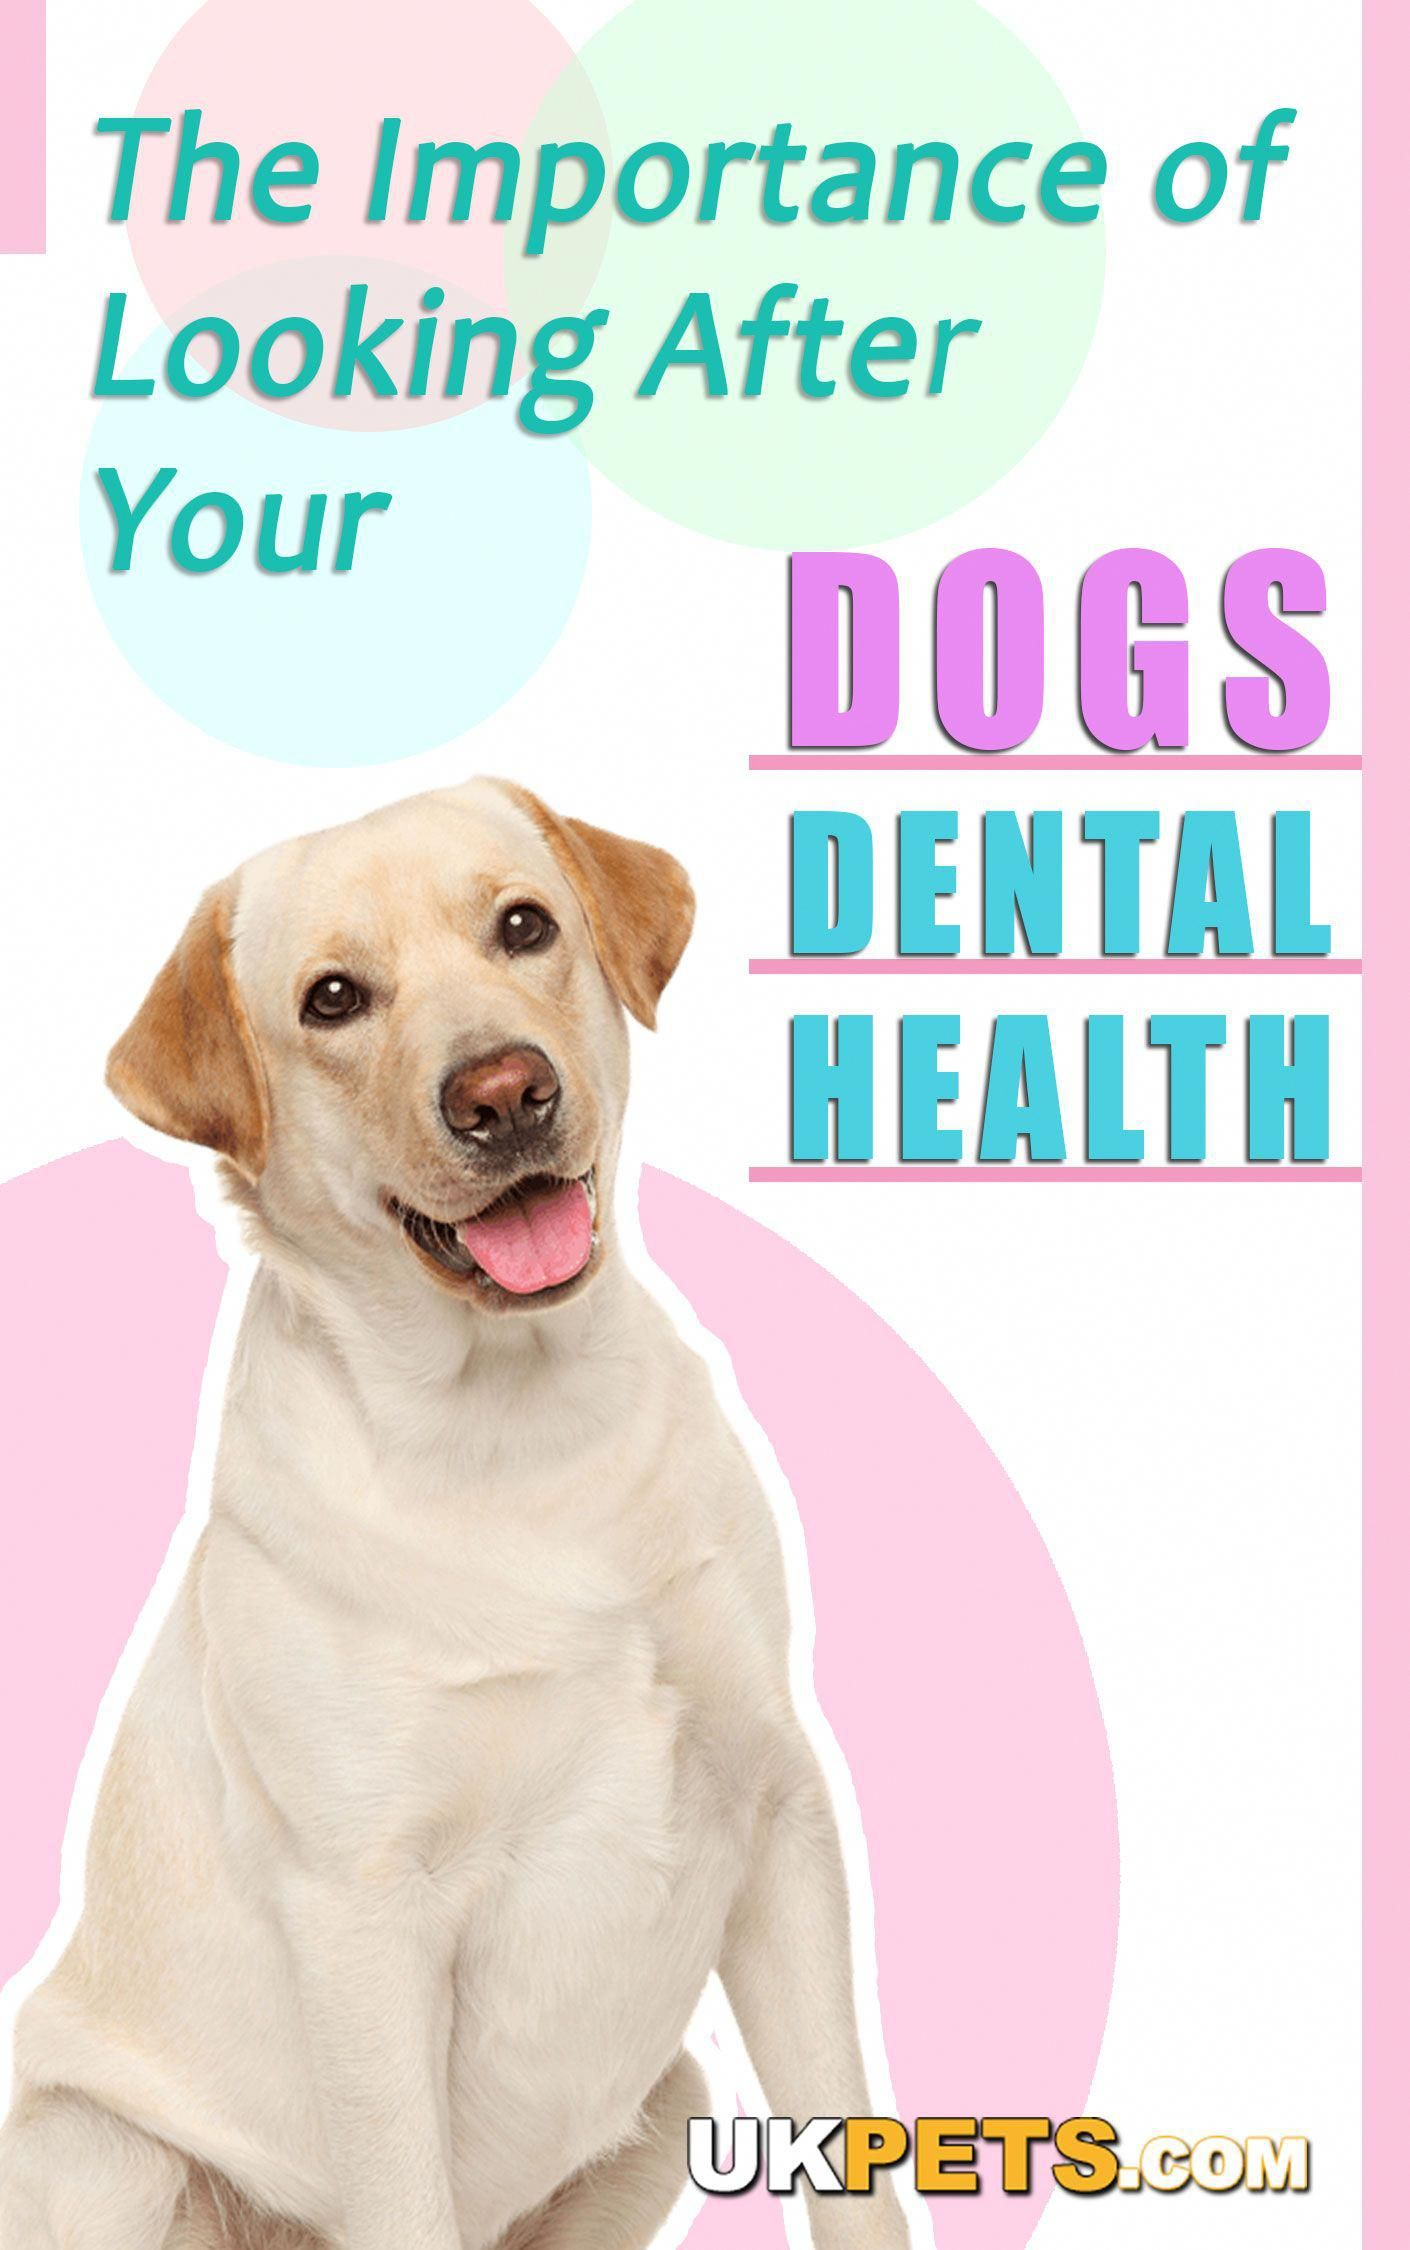 Dogs are not as likely to develop cavities compared to ...